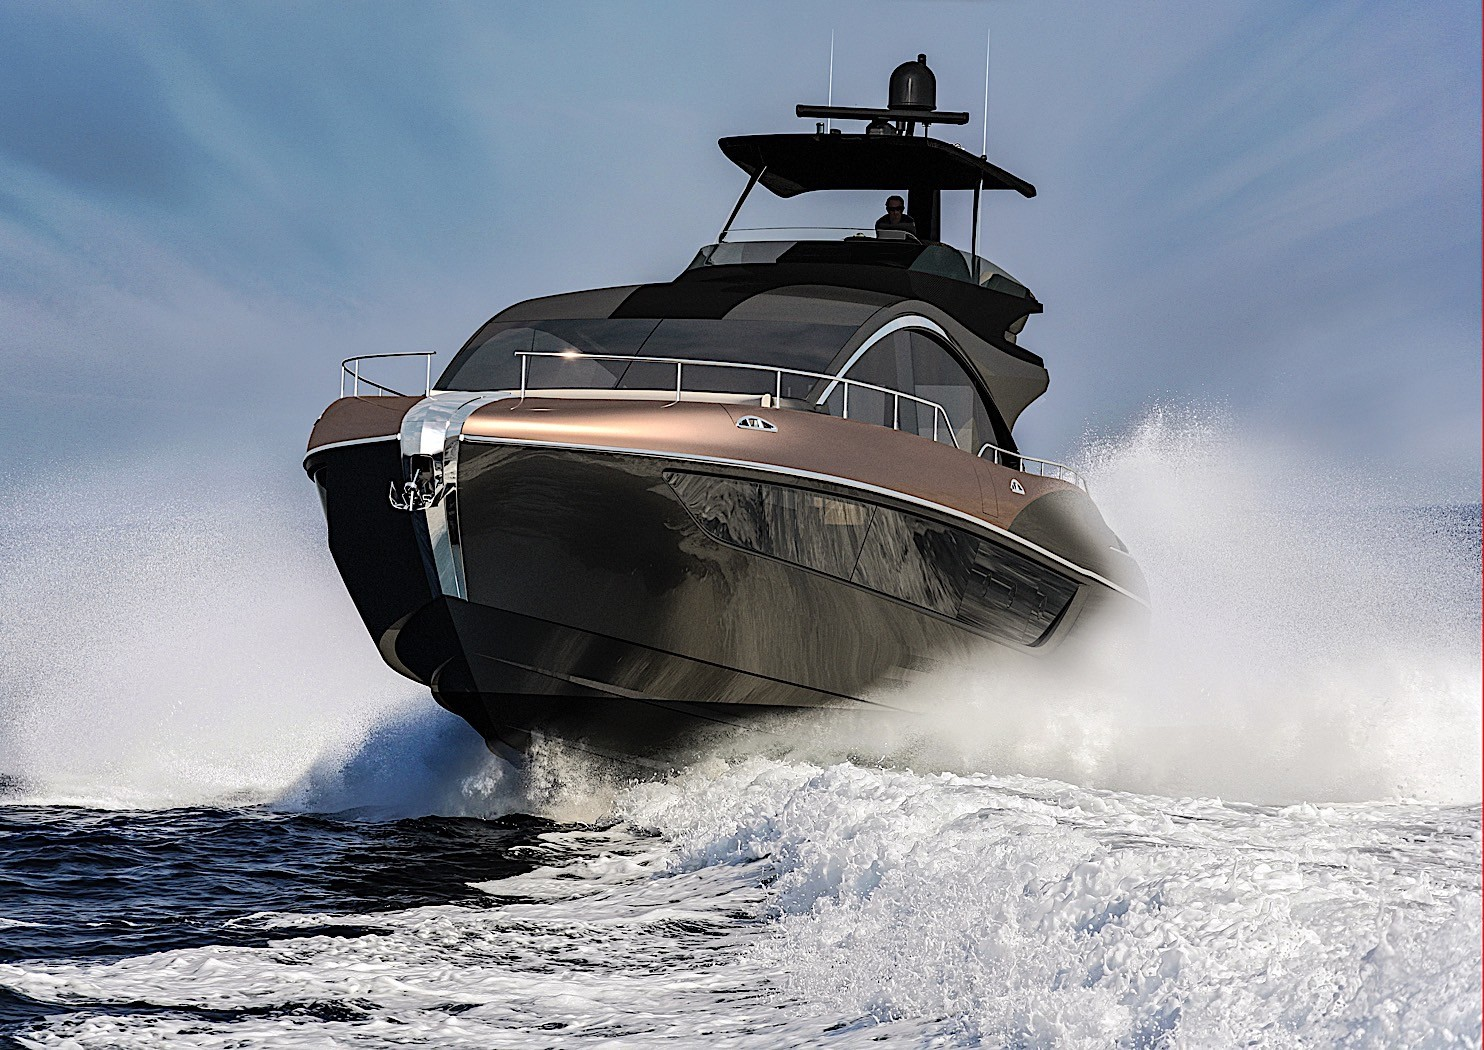 Lexus Unveils LY 650 Luxury Yacht as New Flagship Machine - autoevolution